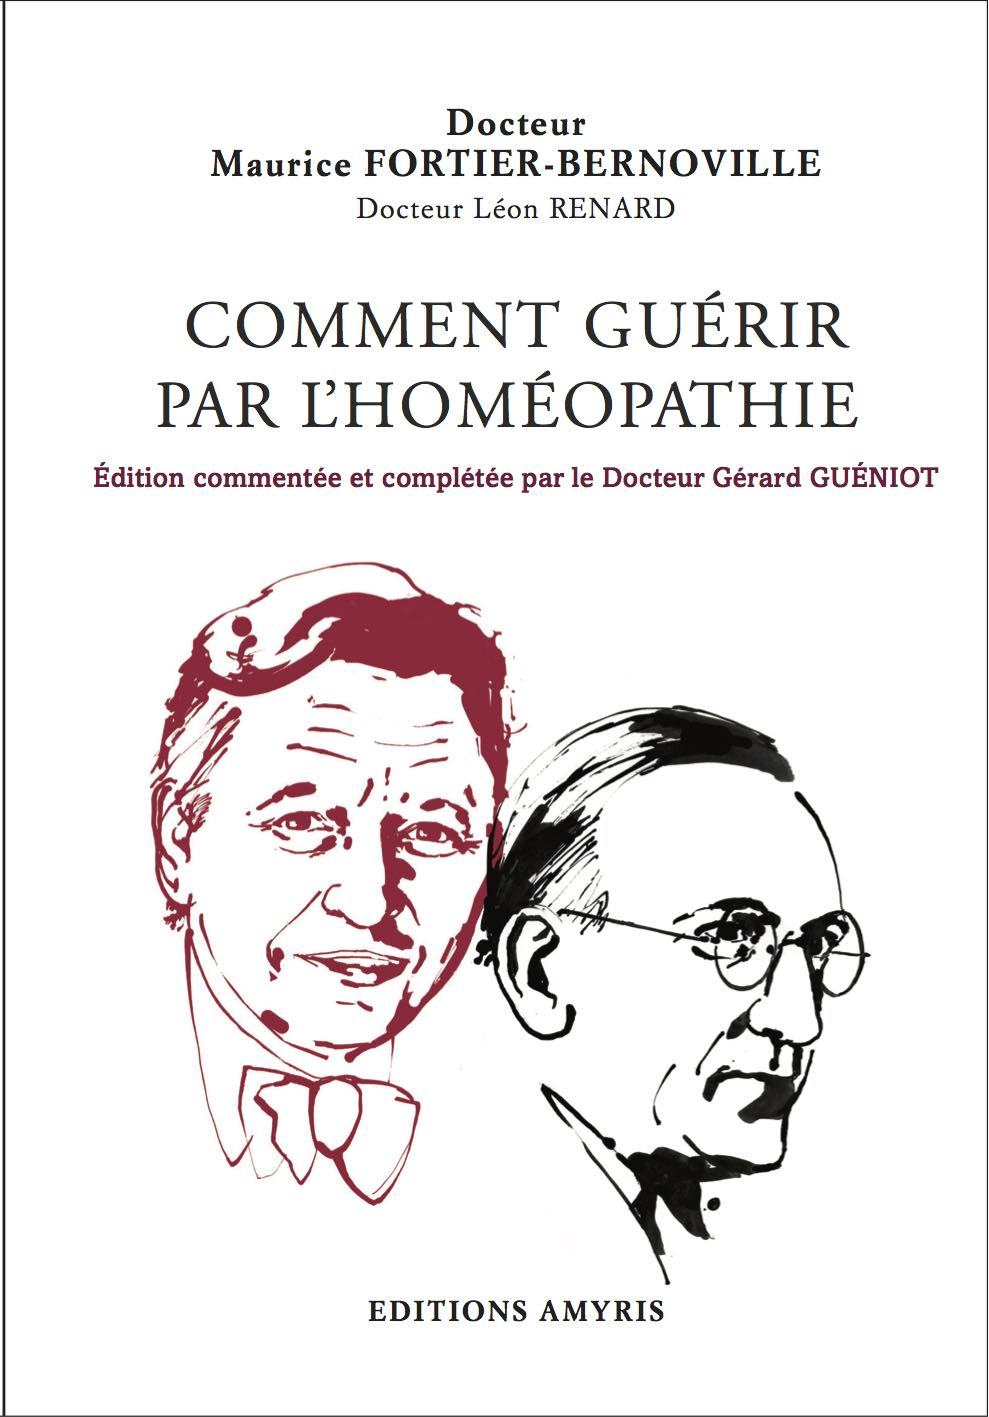 COMMENT GUERIR PAR L'HOMEOPATHIE